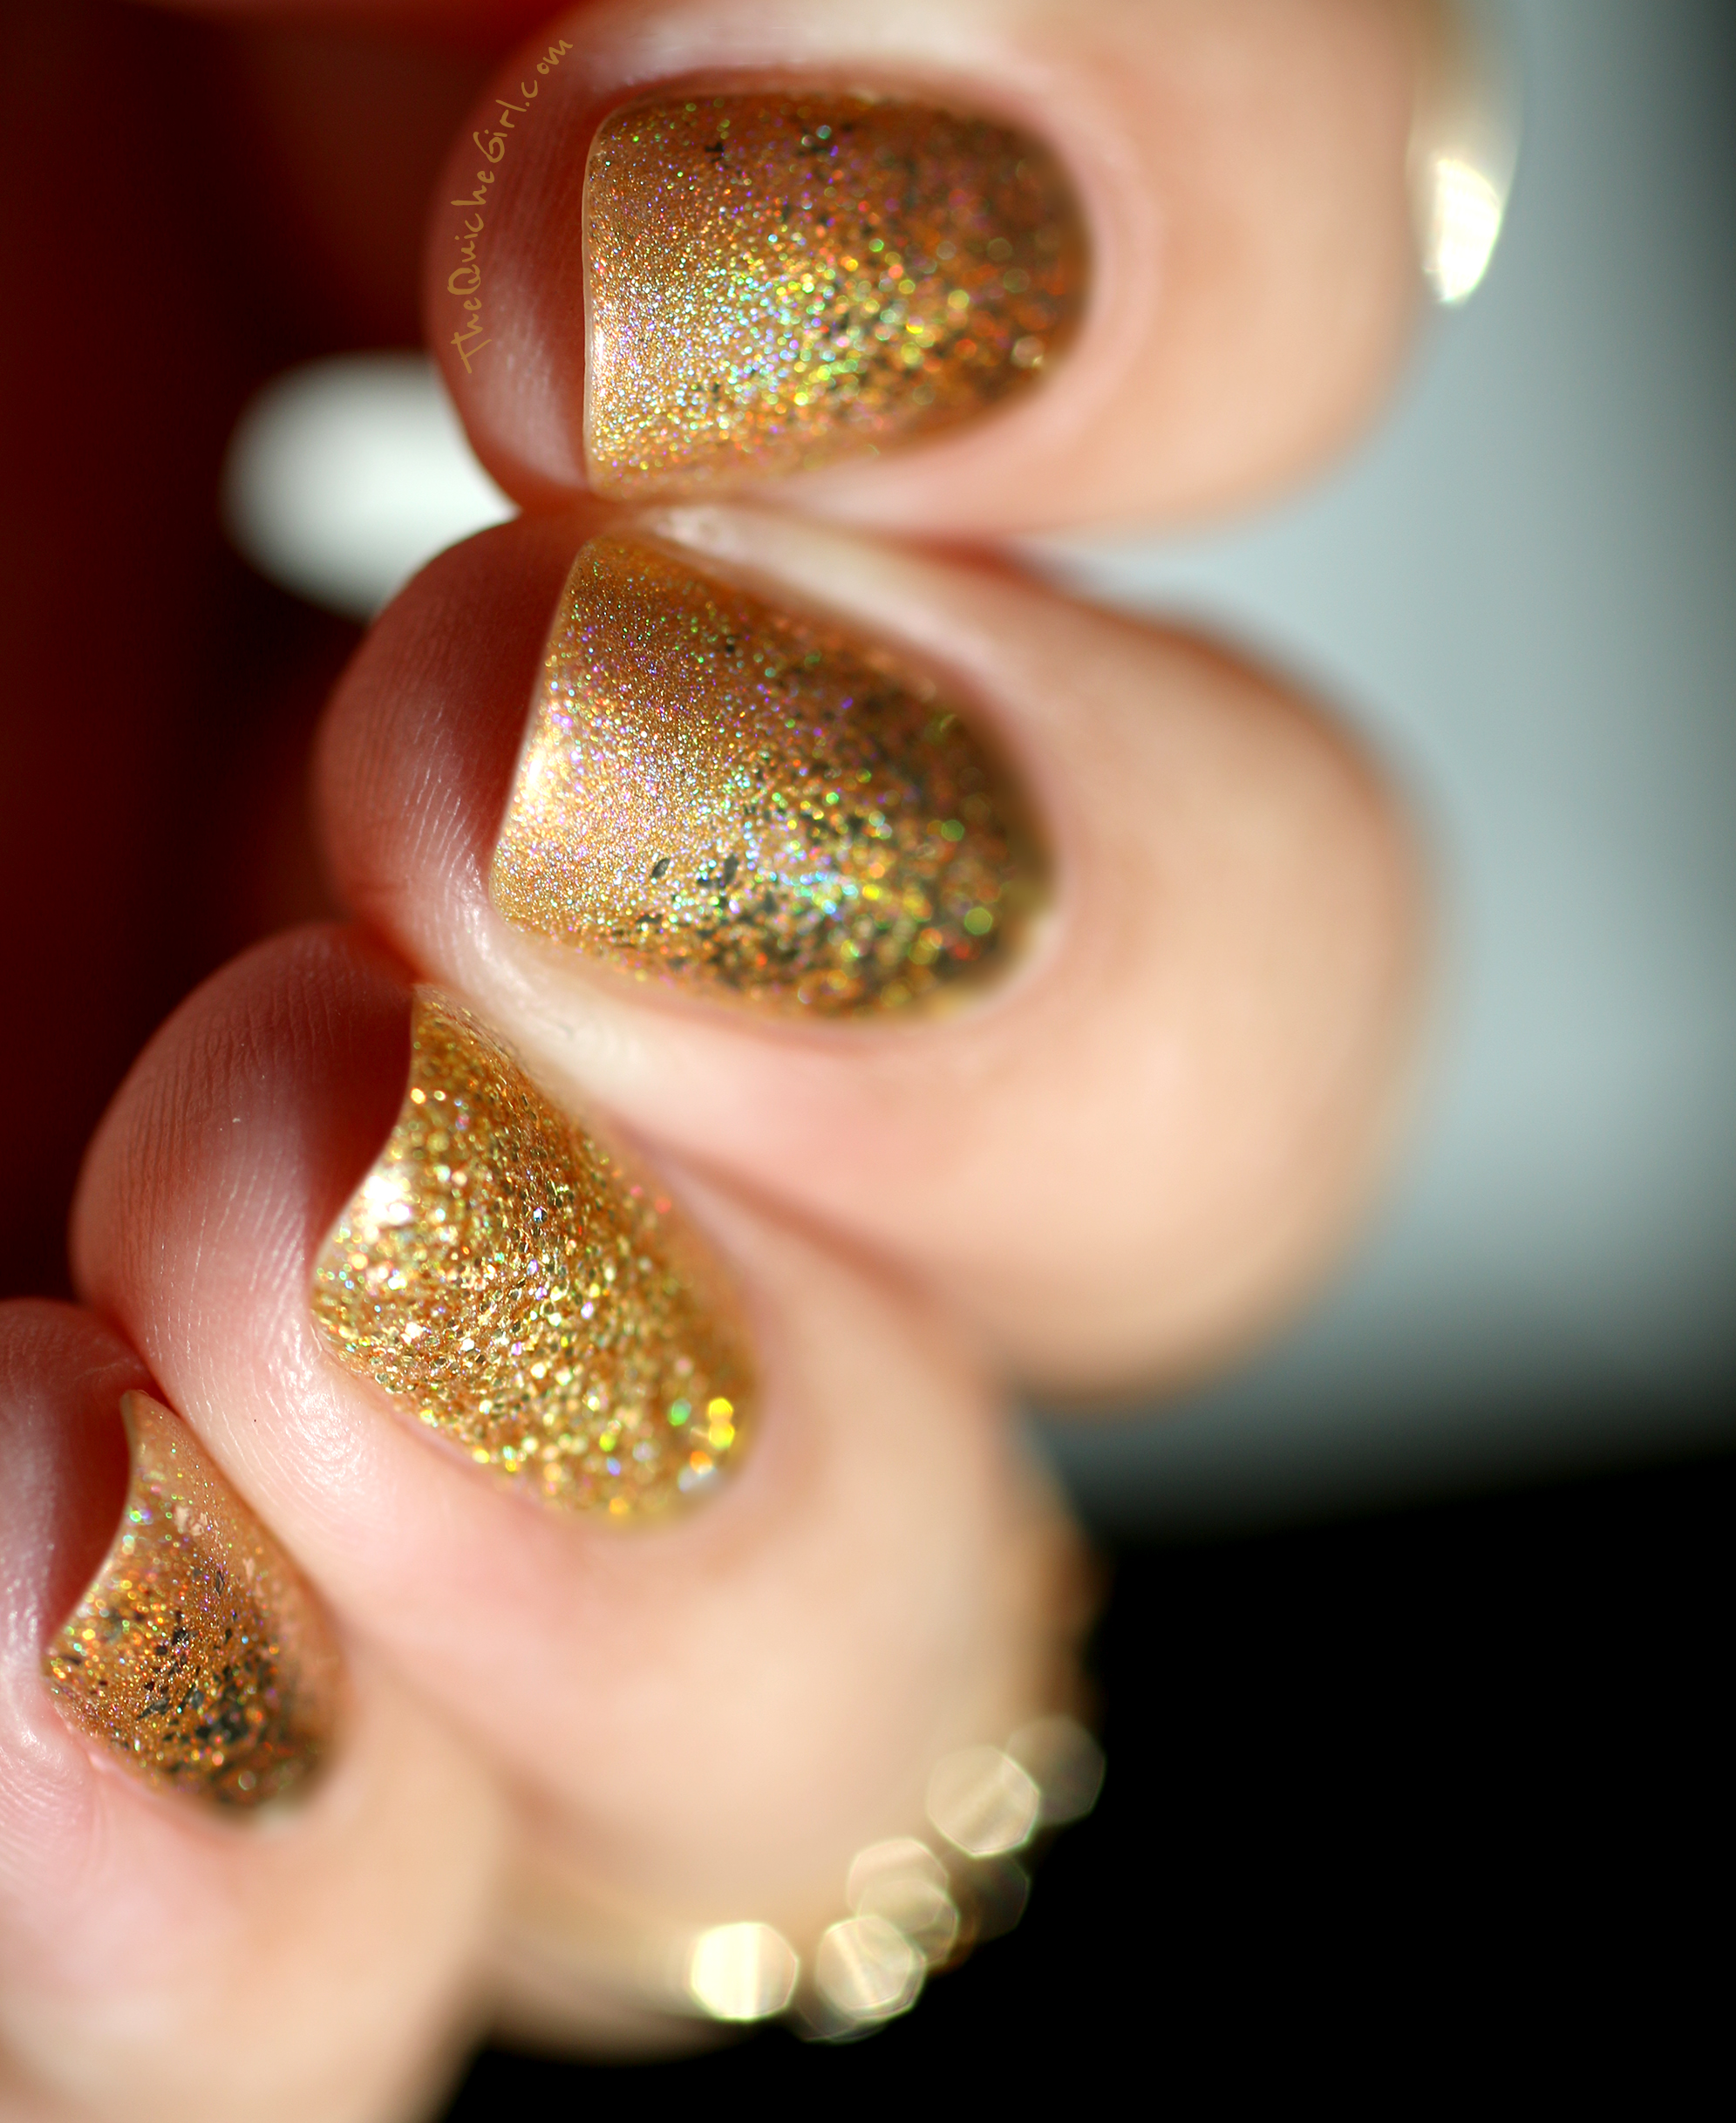 Or, Gold, Fun Lacquer, Nailstorming, macro, QuicheGirl